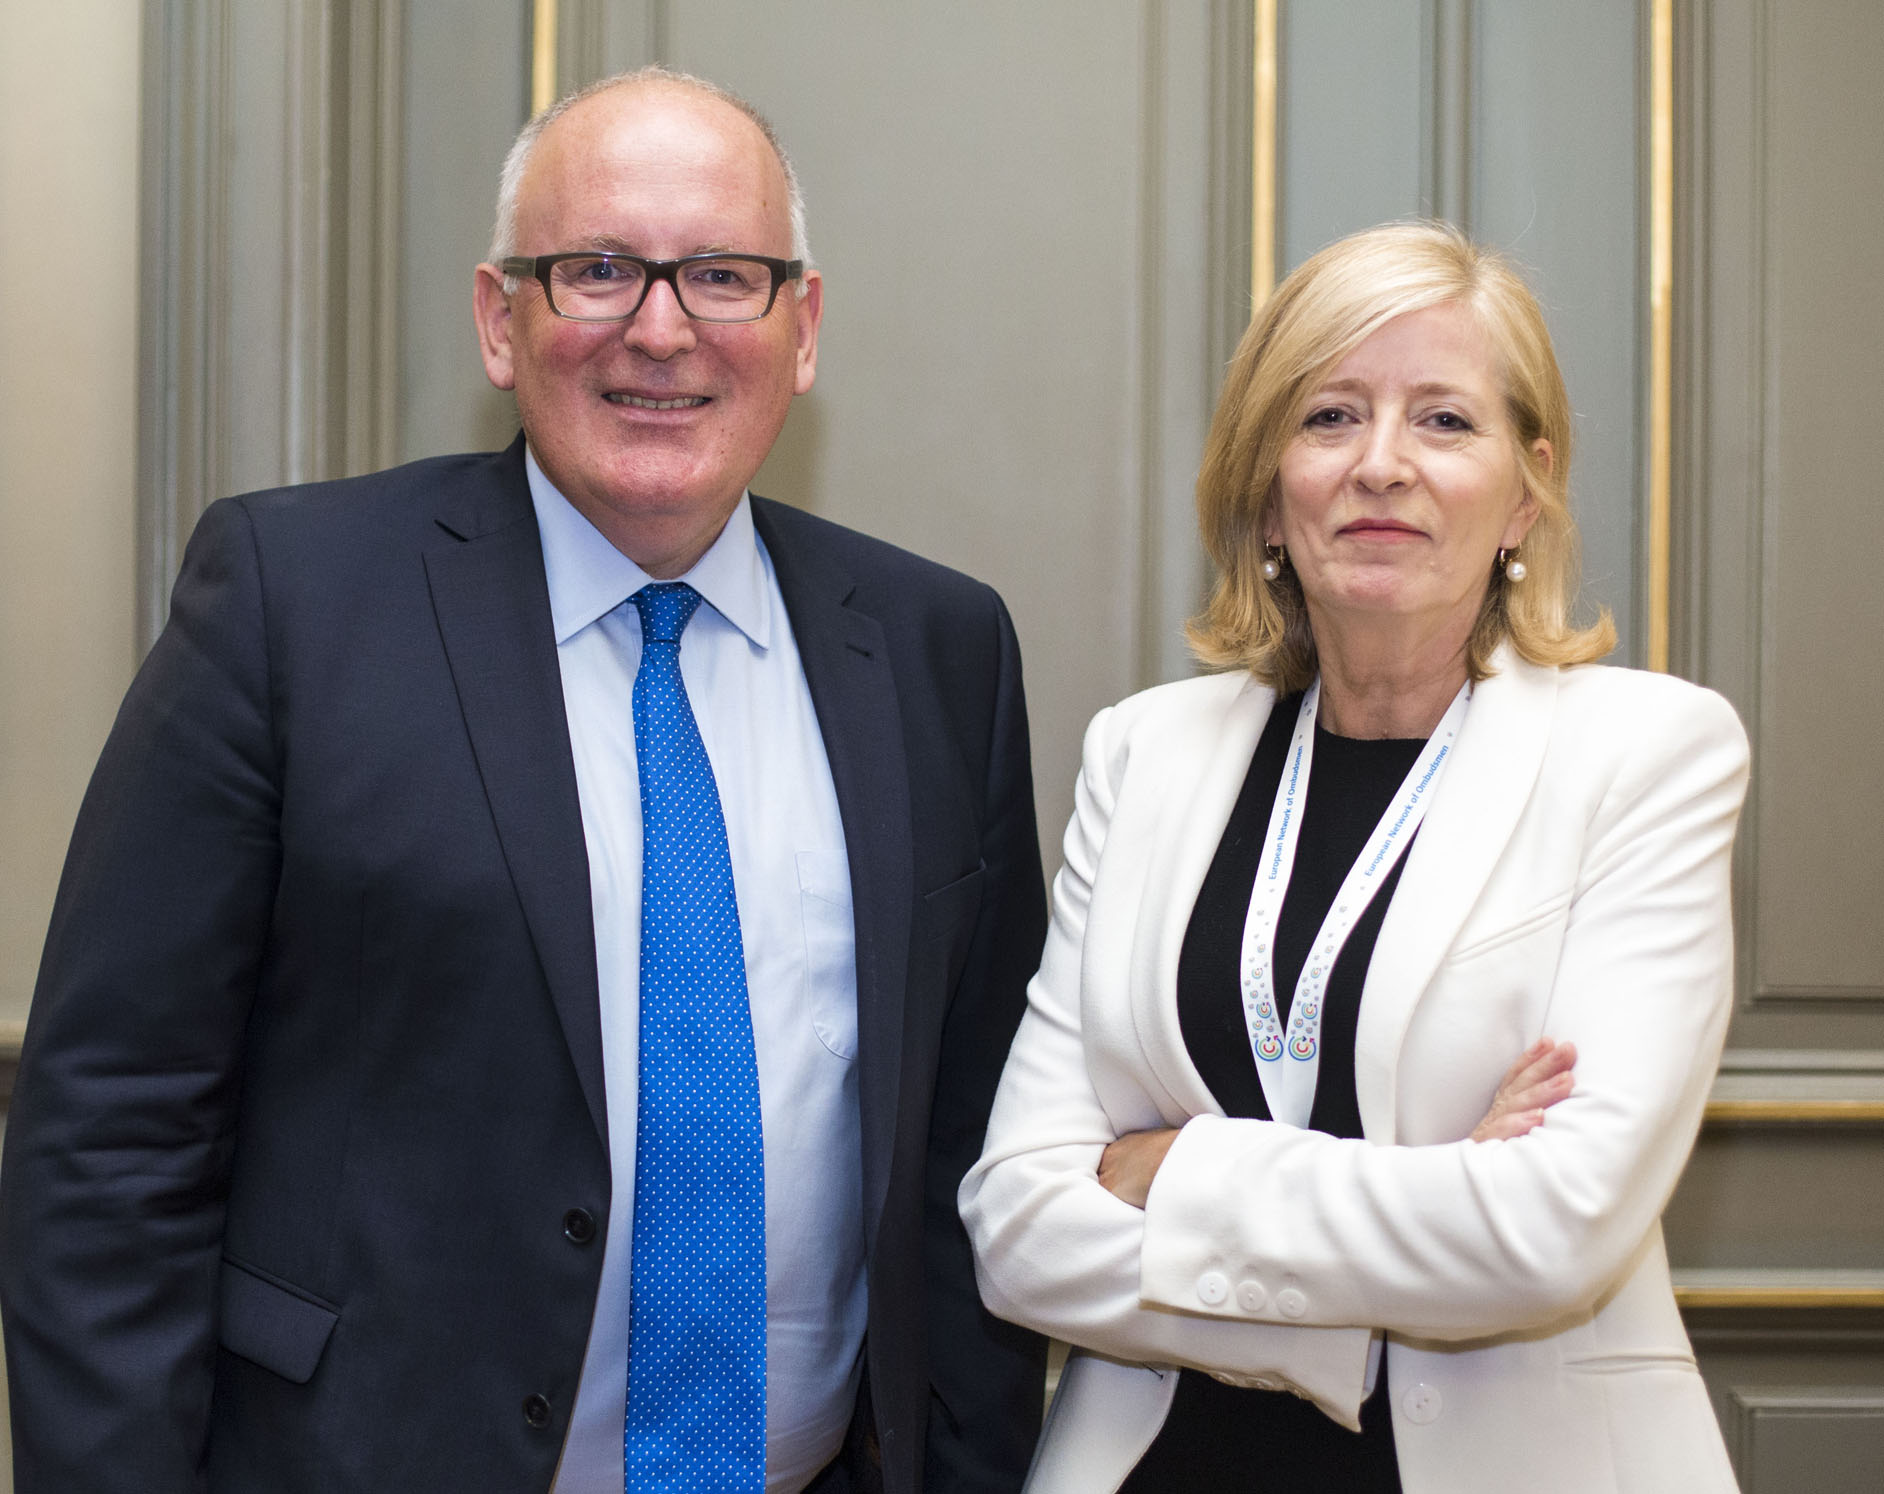 The European Ombudsman with Frans Timmermans, European Commission First Vice-President responsible for Better Regulation, Interinstitutional Relations, the Rule of Law and the Charter of Fundamental Rights.